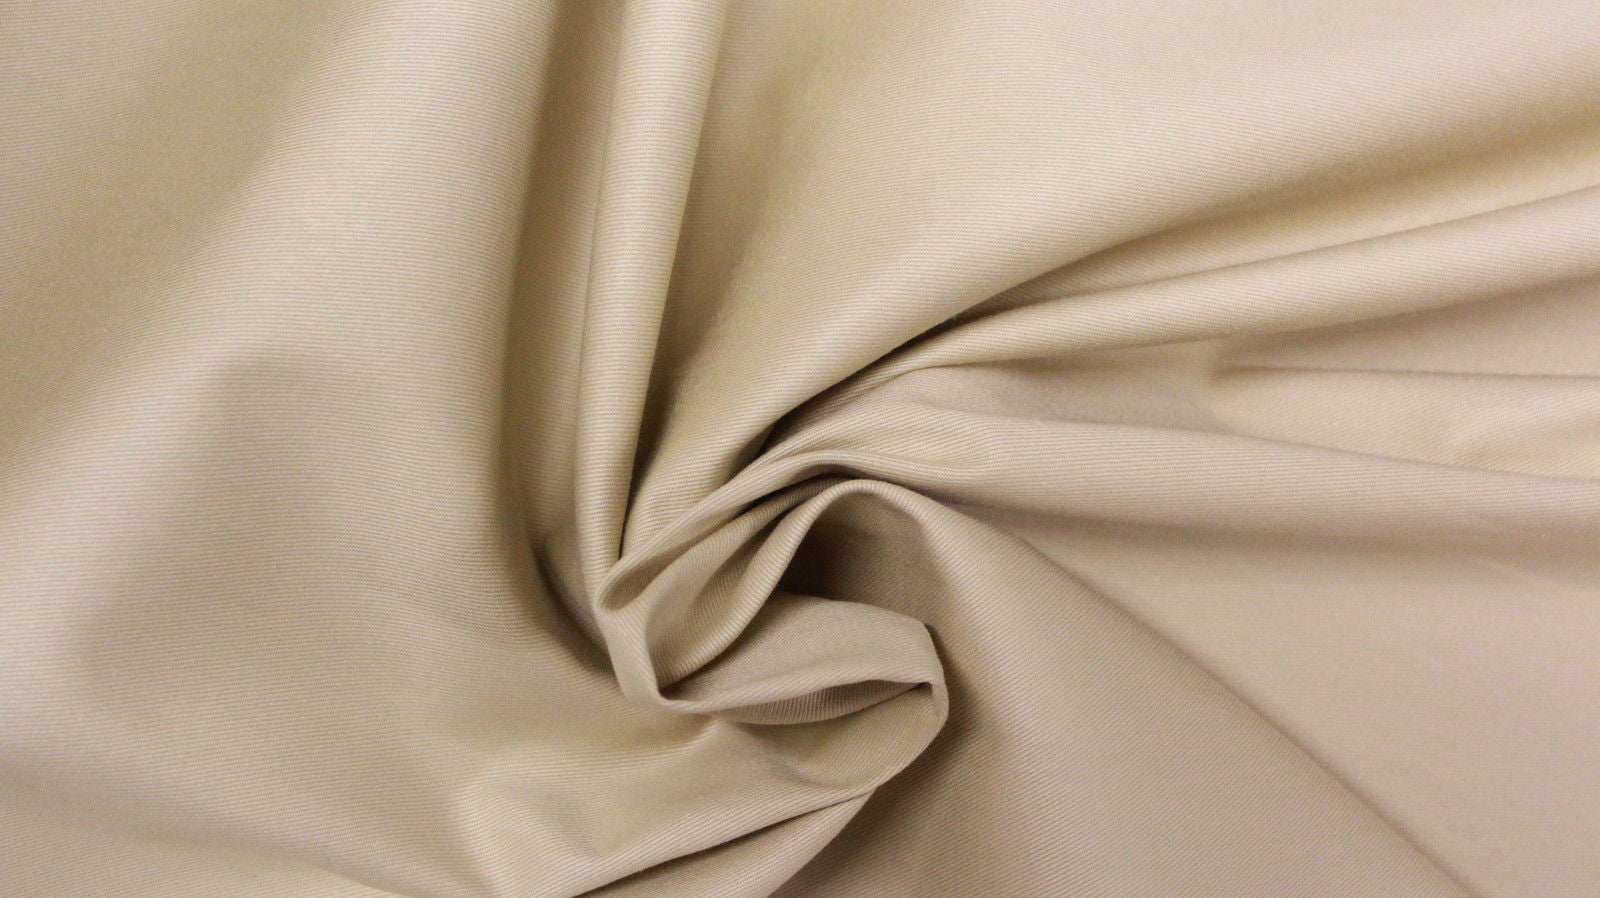 100 Cotton Twill Upholstery Fabric Endure Fabrics